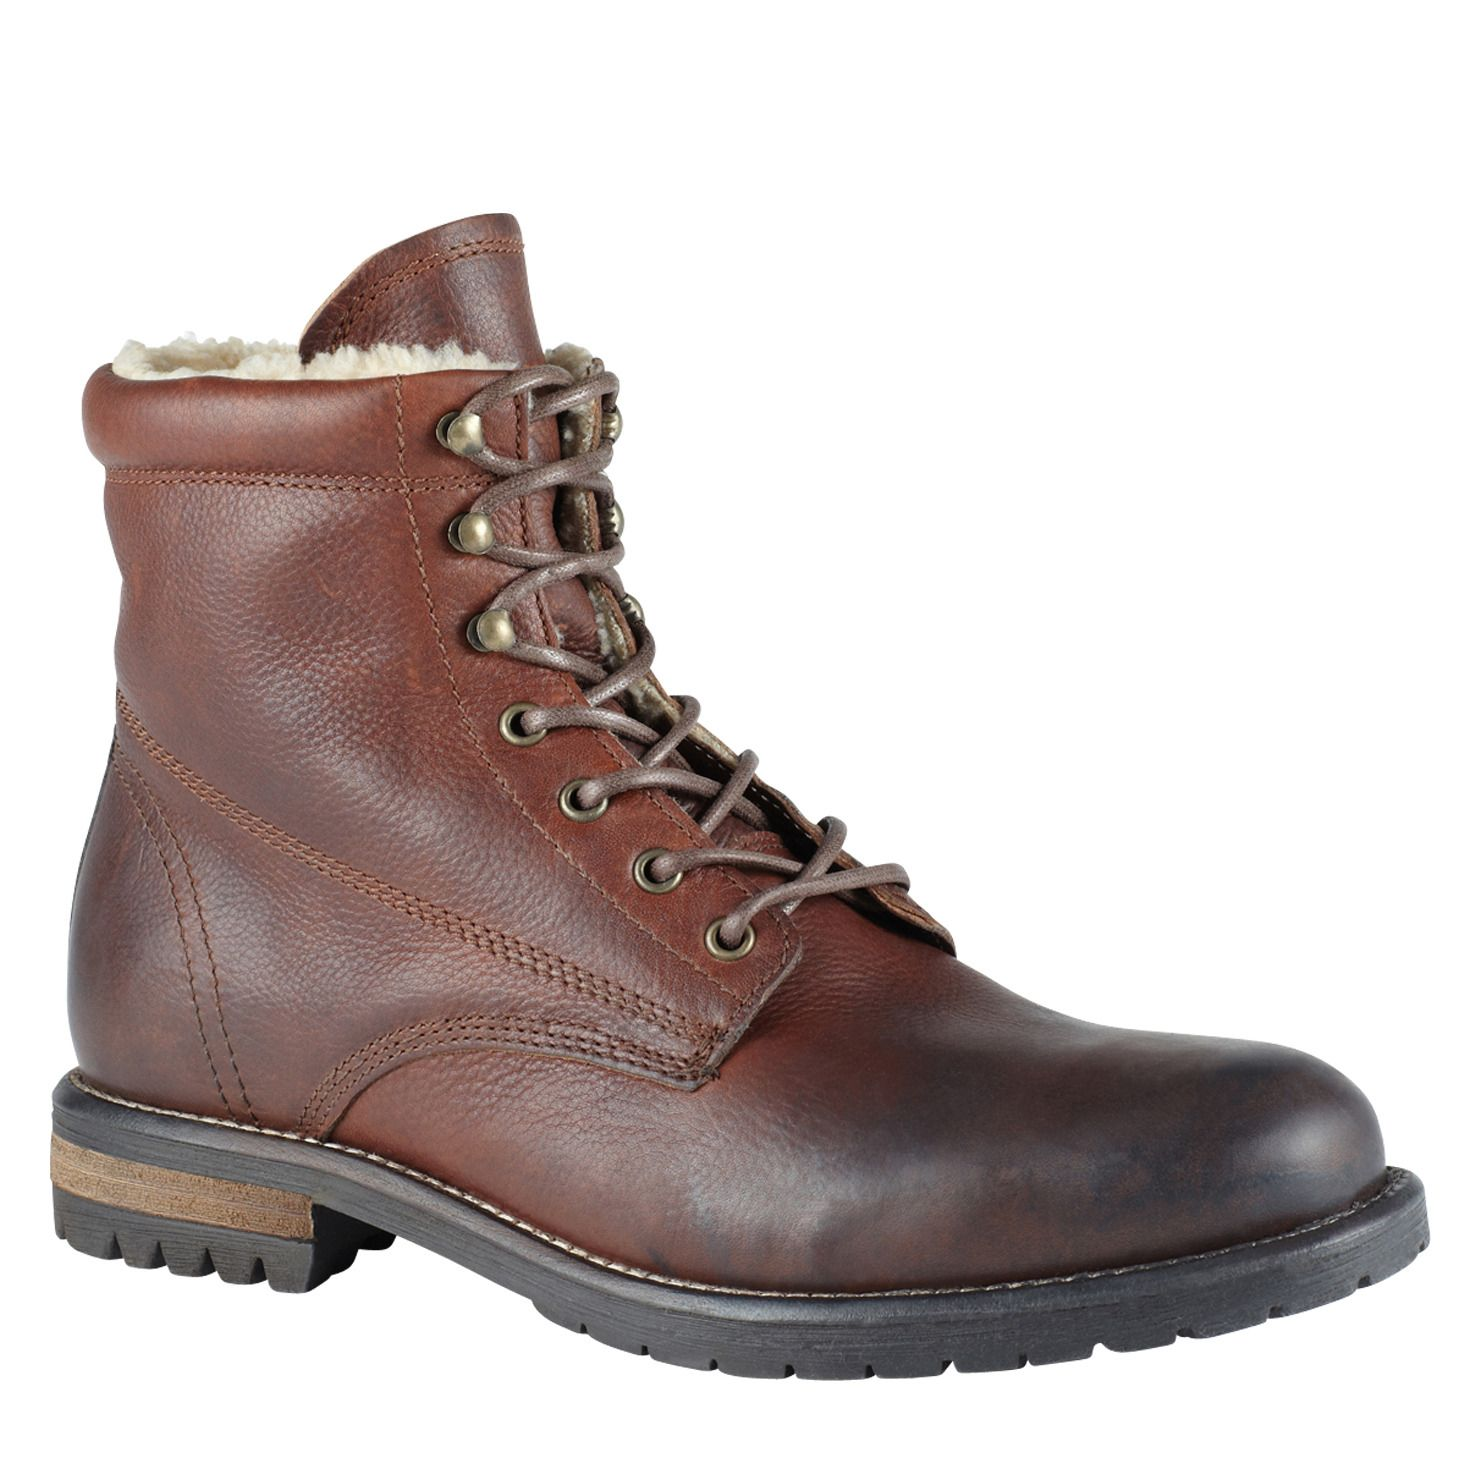 WIEBE - sale's sale boots men for sale at ALDO Shoes. | Shoes ...